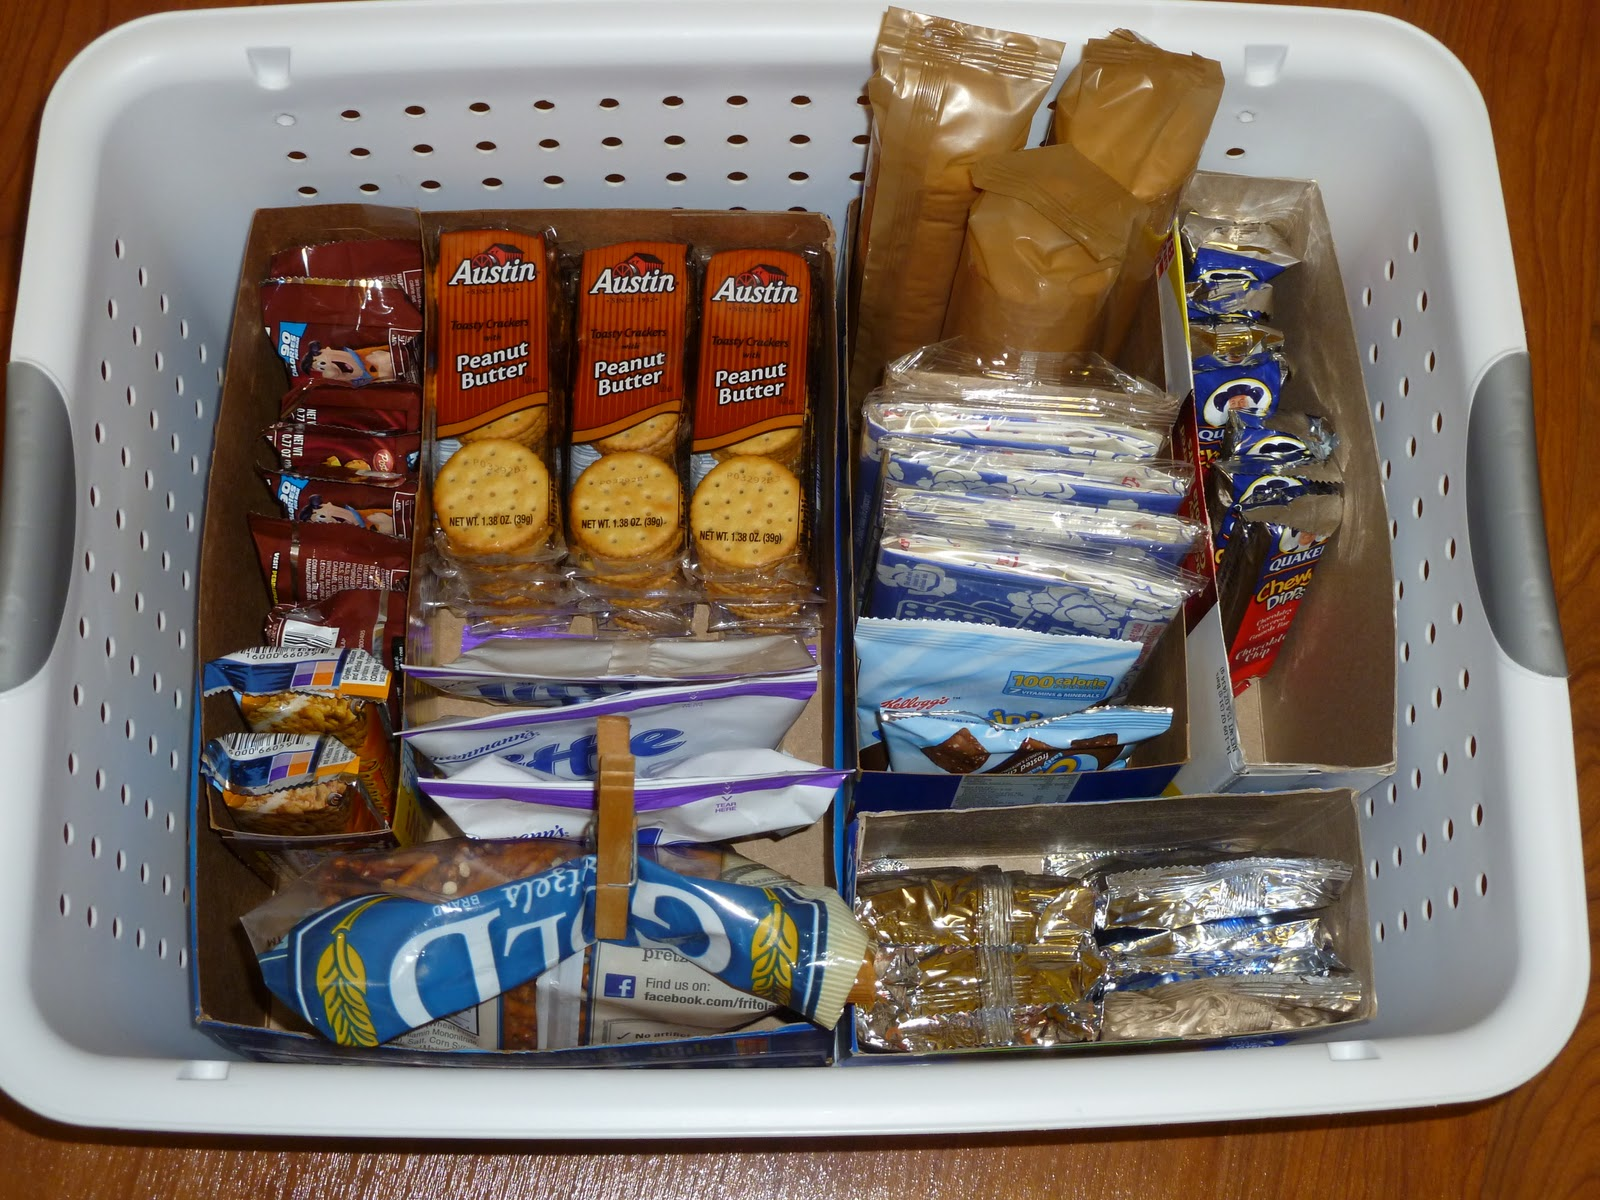 8 Kids Storage And Organization Ideas: Organizing Children's Snacks